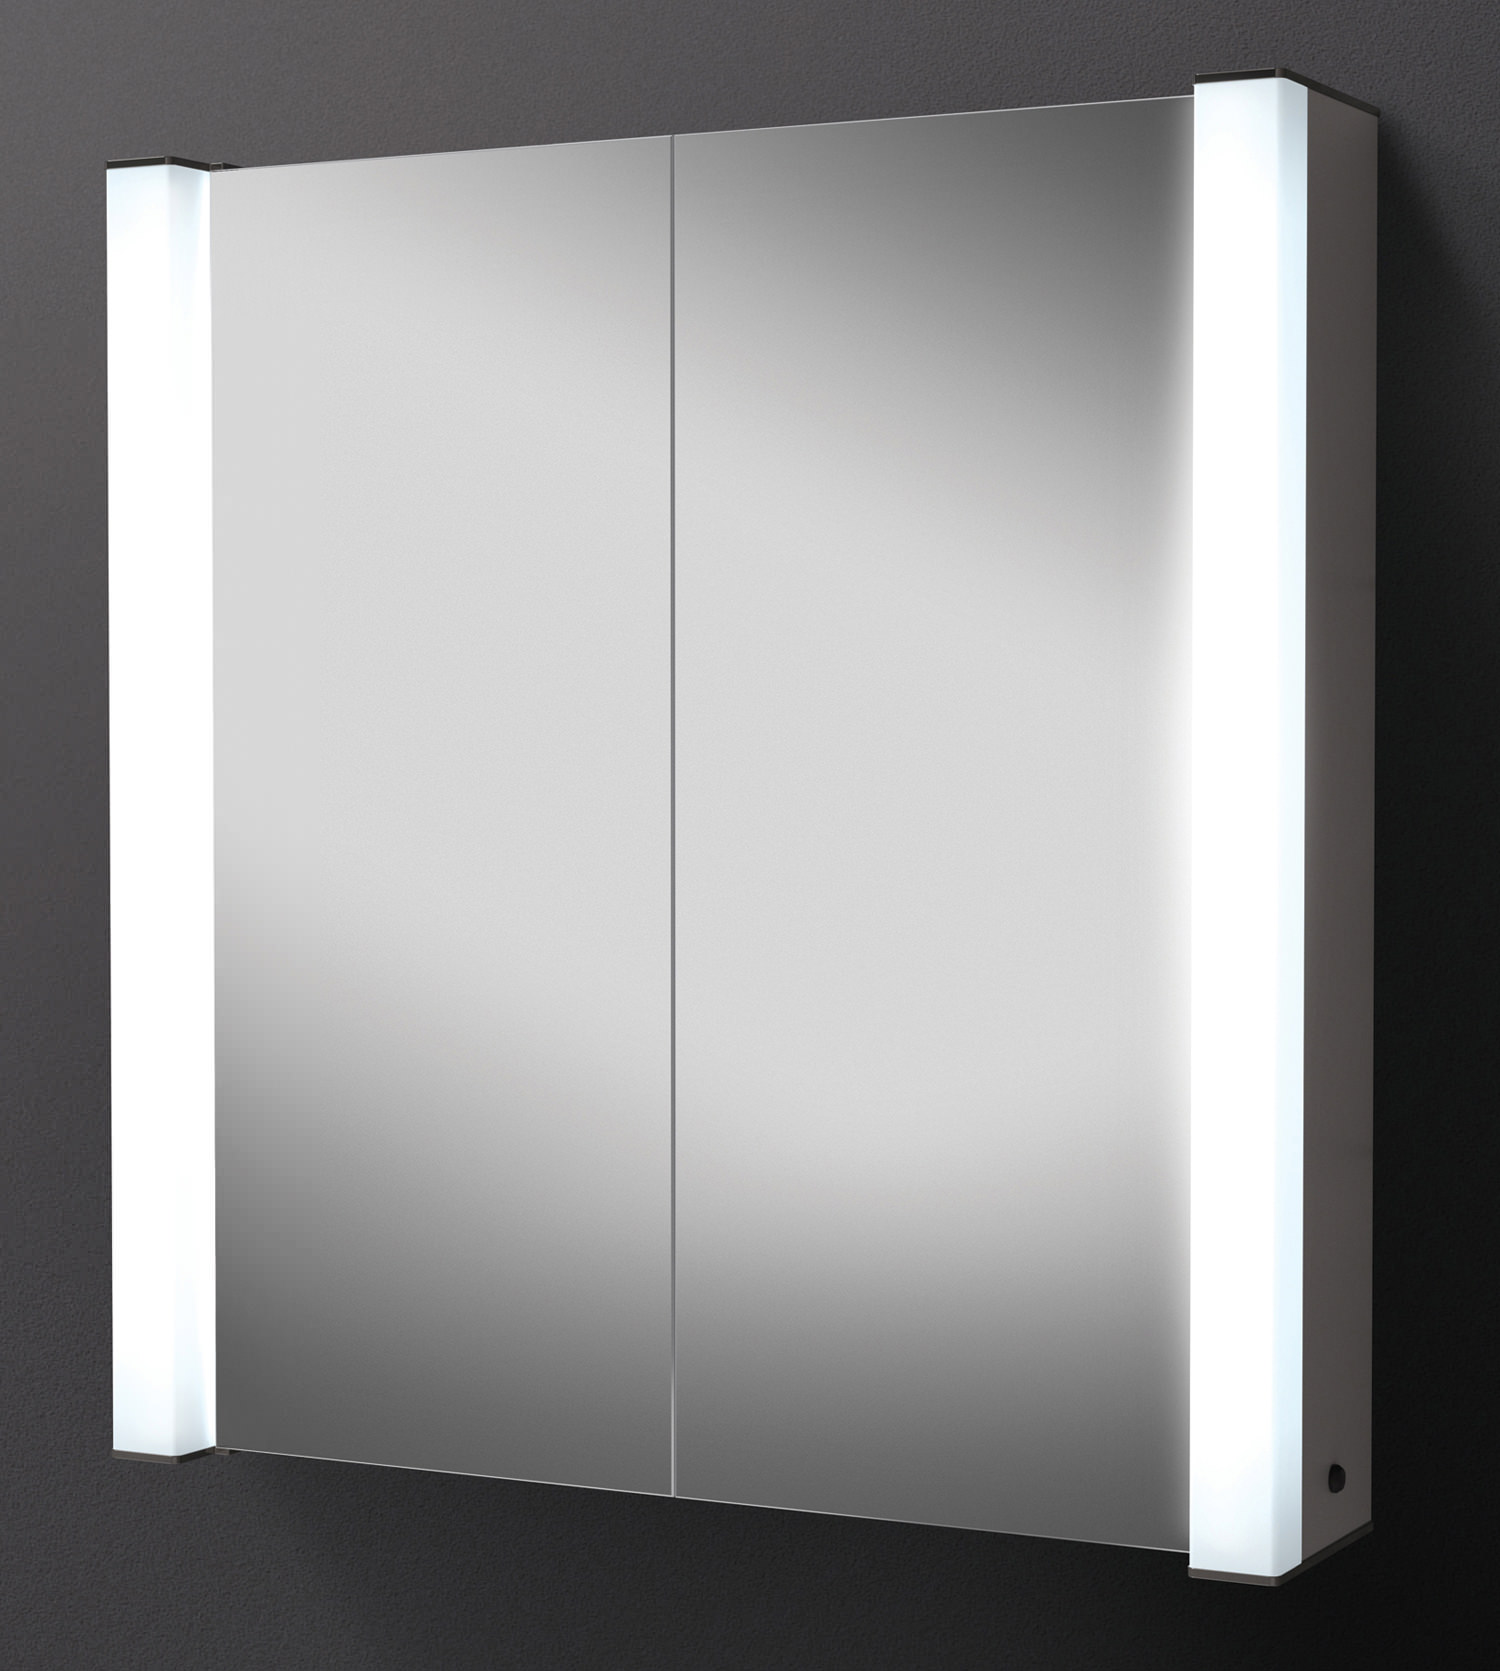 Hib Photec Double Door Illuminated Aluminium Mirrored